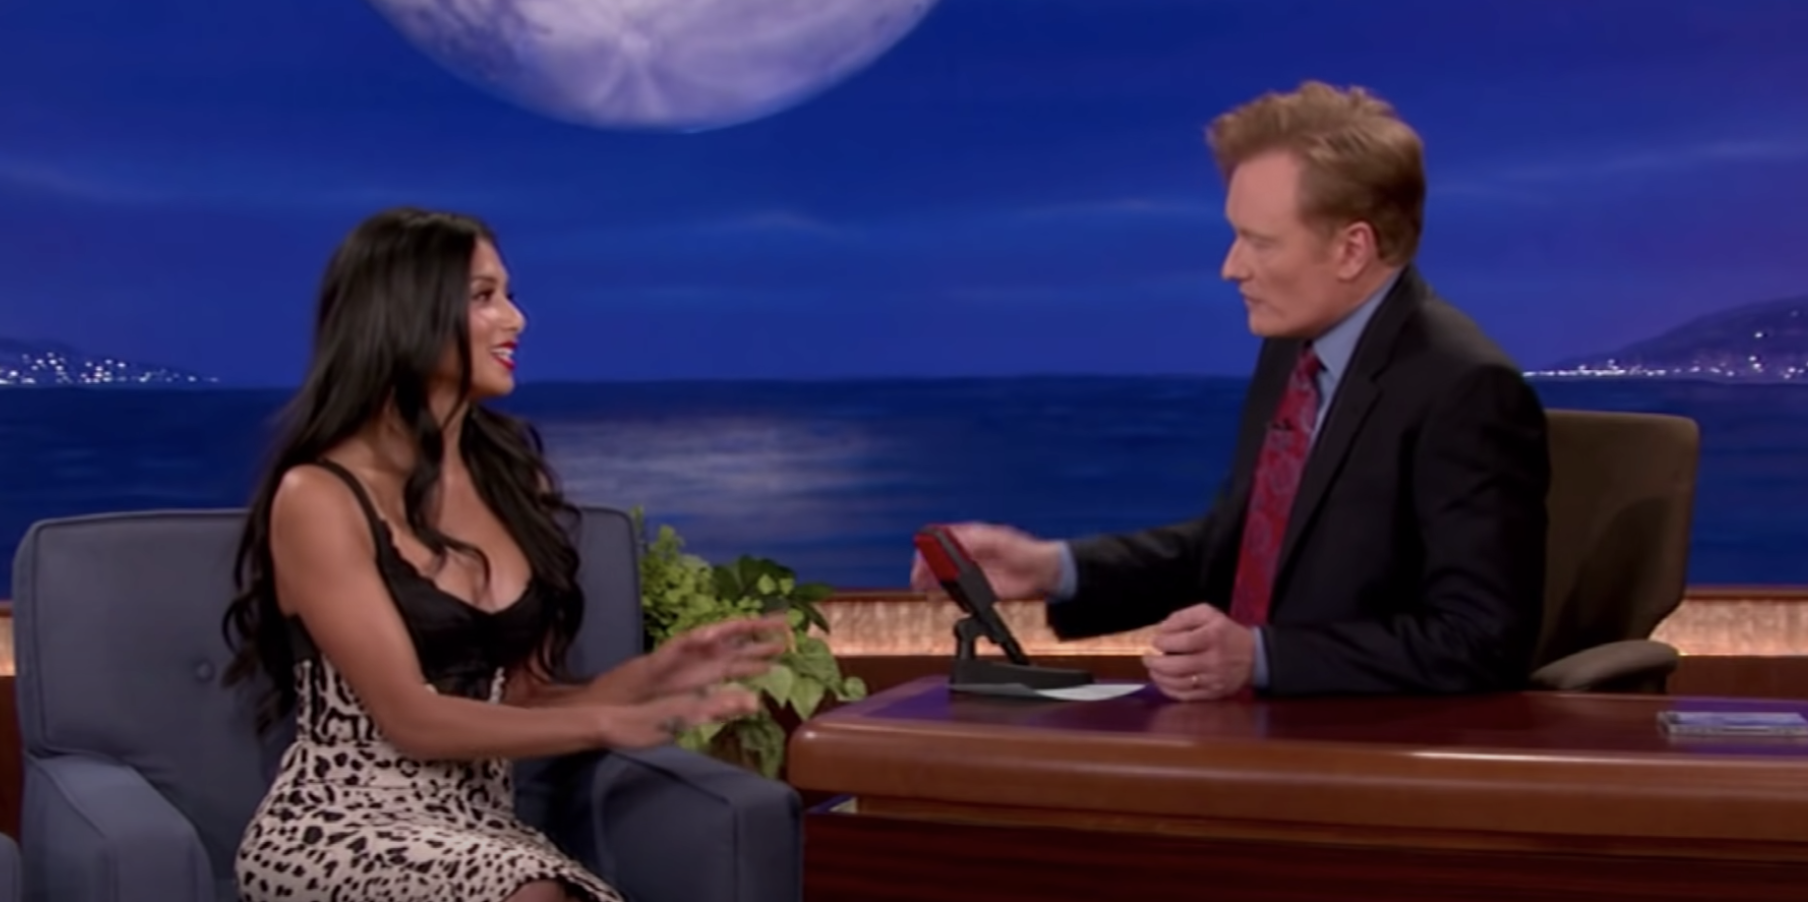 Conan O'Brien with a female guest on his talk show